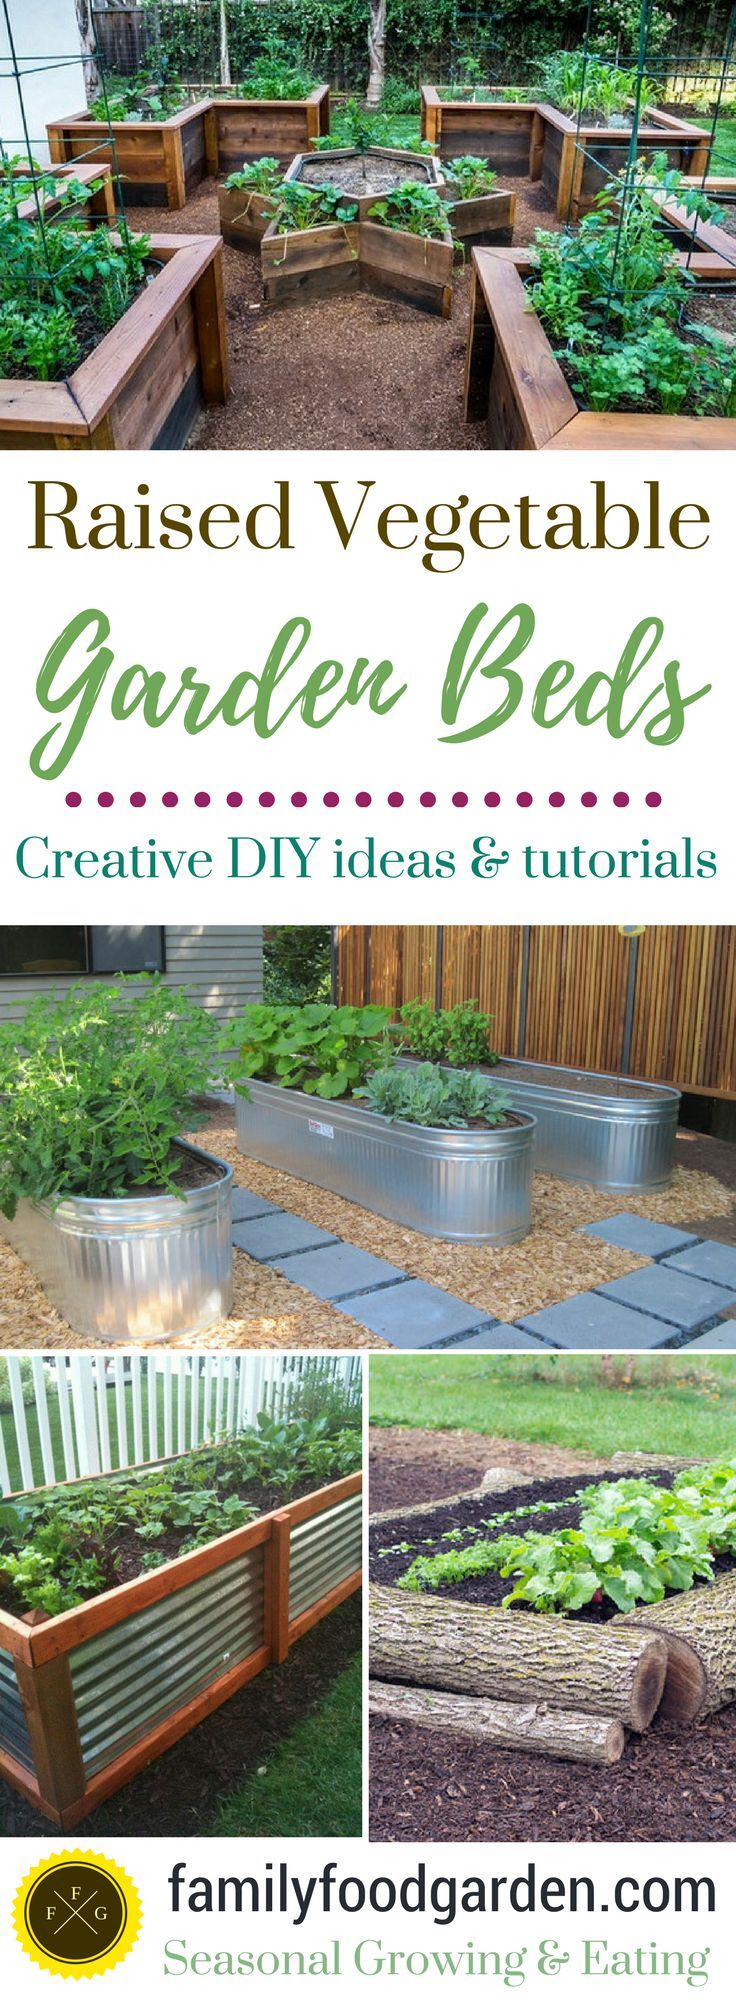 25 Best Ideas About Raised Garden Beds On Pinterest Raised Beds Garden Beds And Raised Gardens